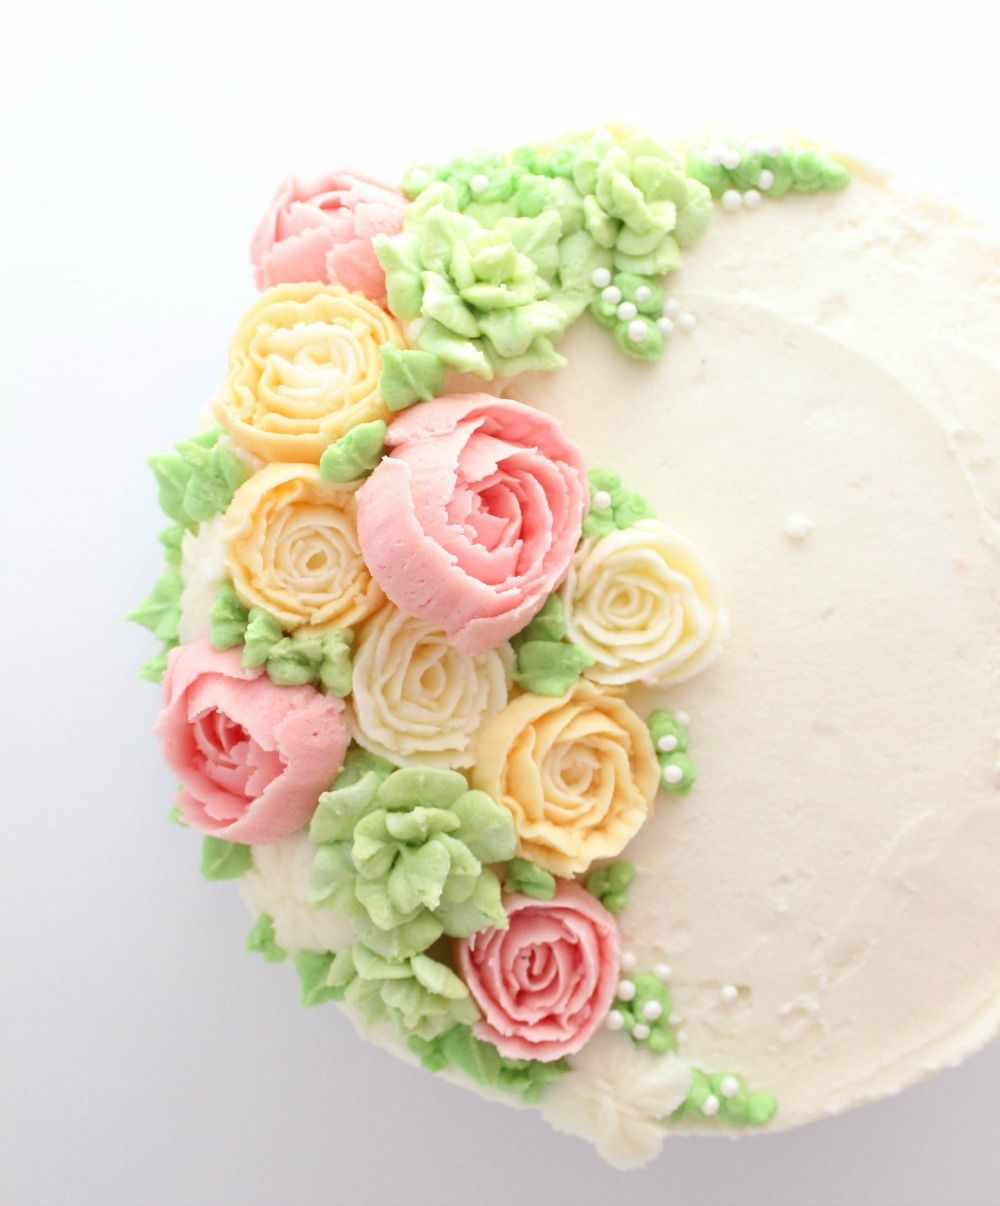 Cake Decorated With Piped Roses : Buttercream Flower Cake Buttercream flowers, Decorating ...